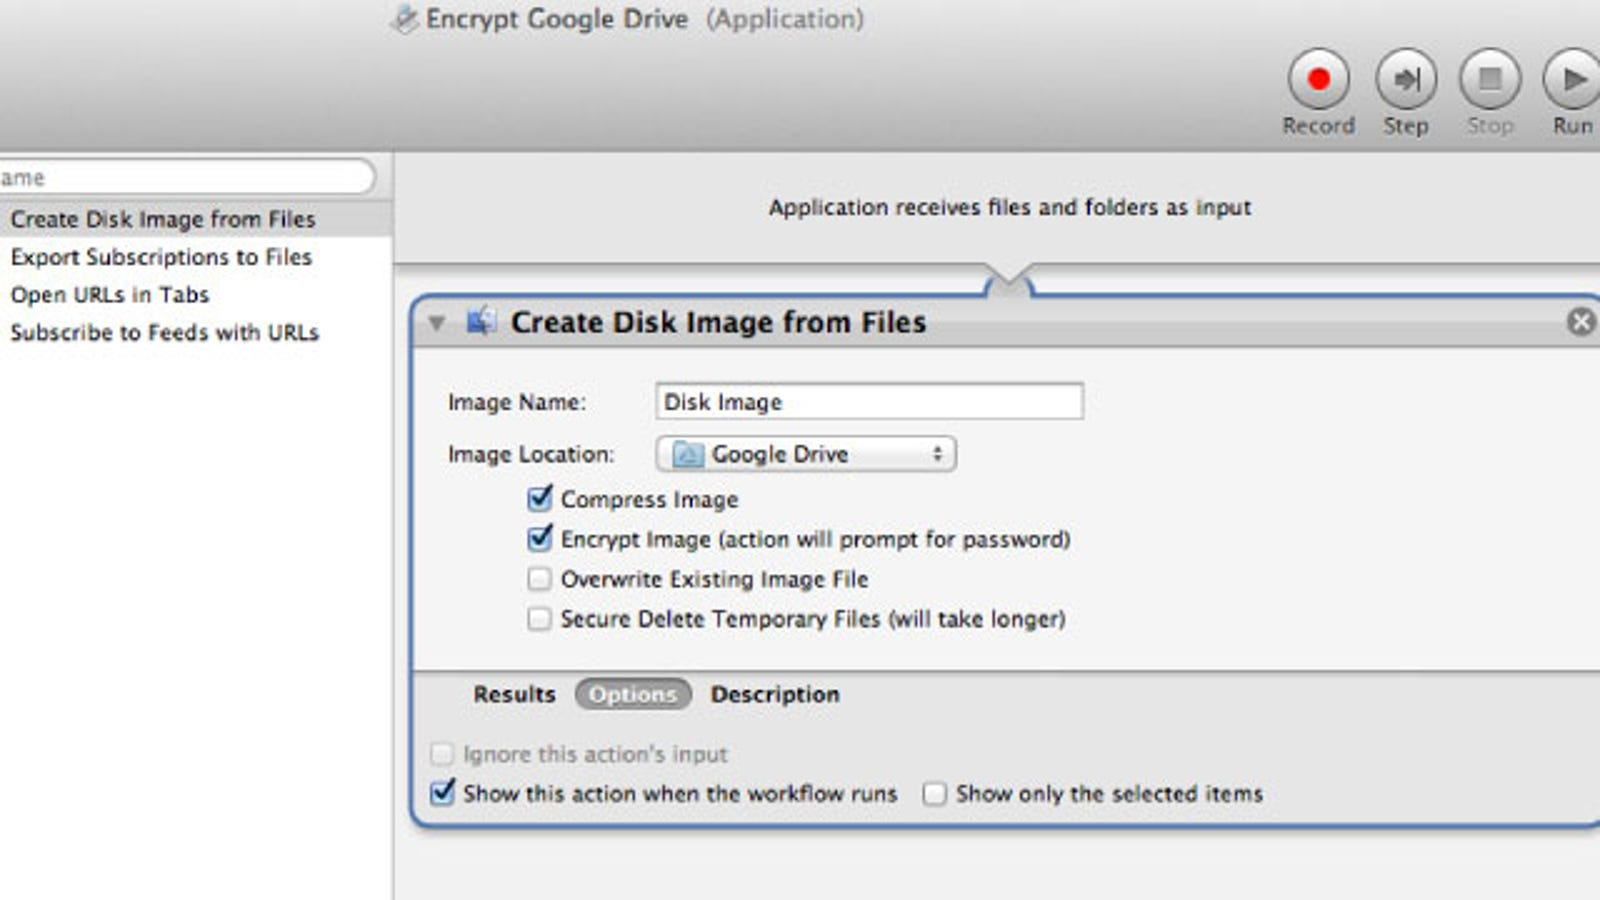 Drag-and-Drop To Automatically Encrypt Files in Google Drive Using